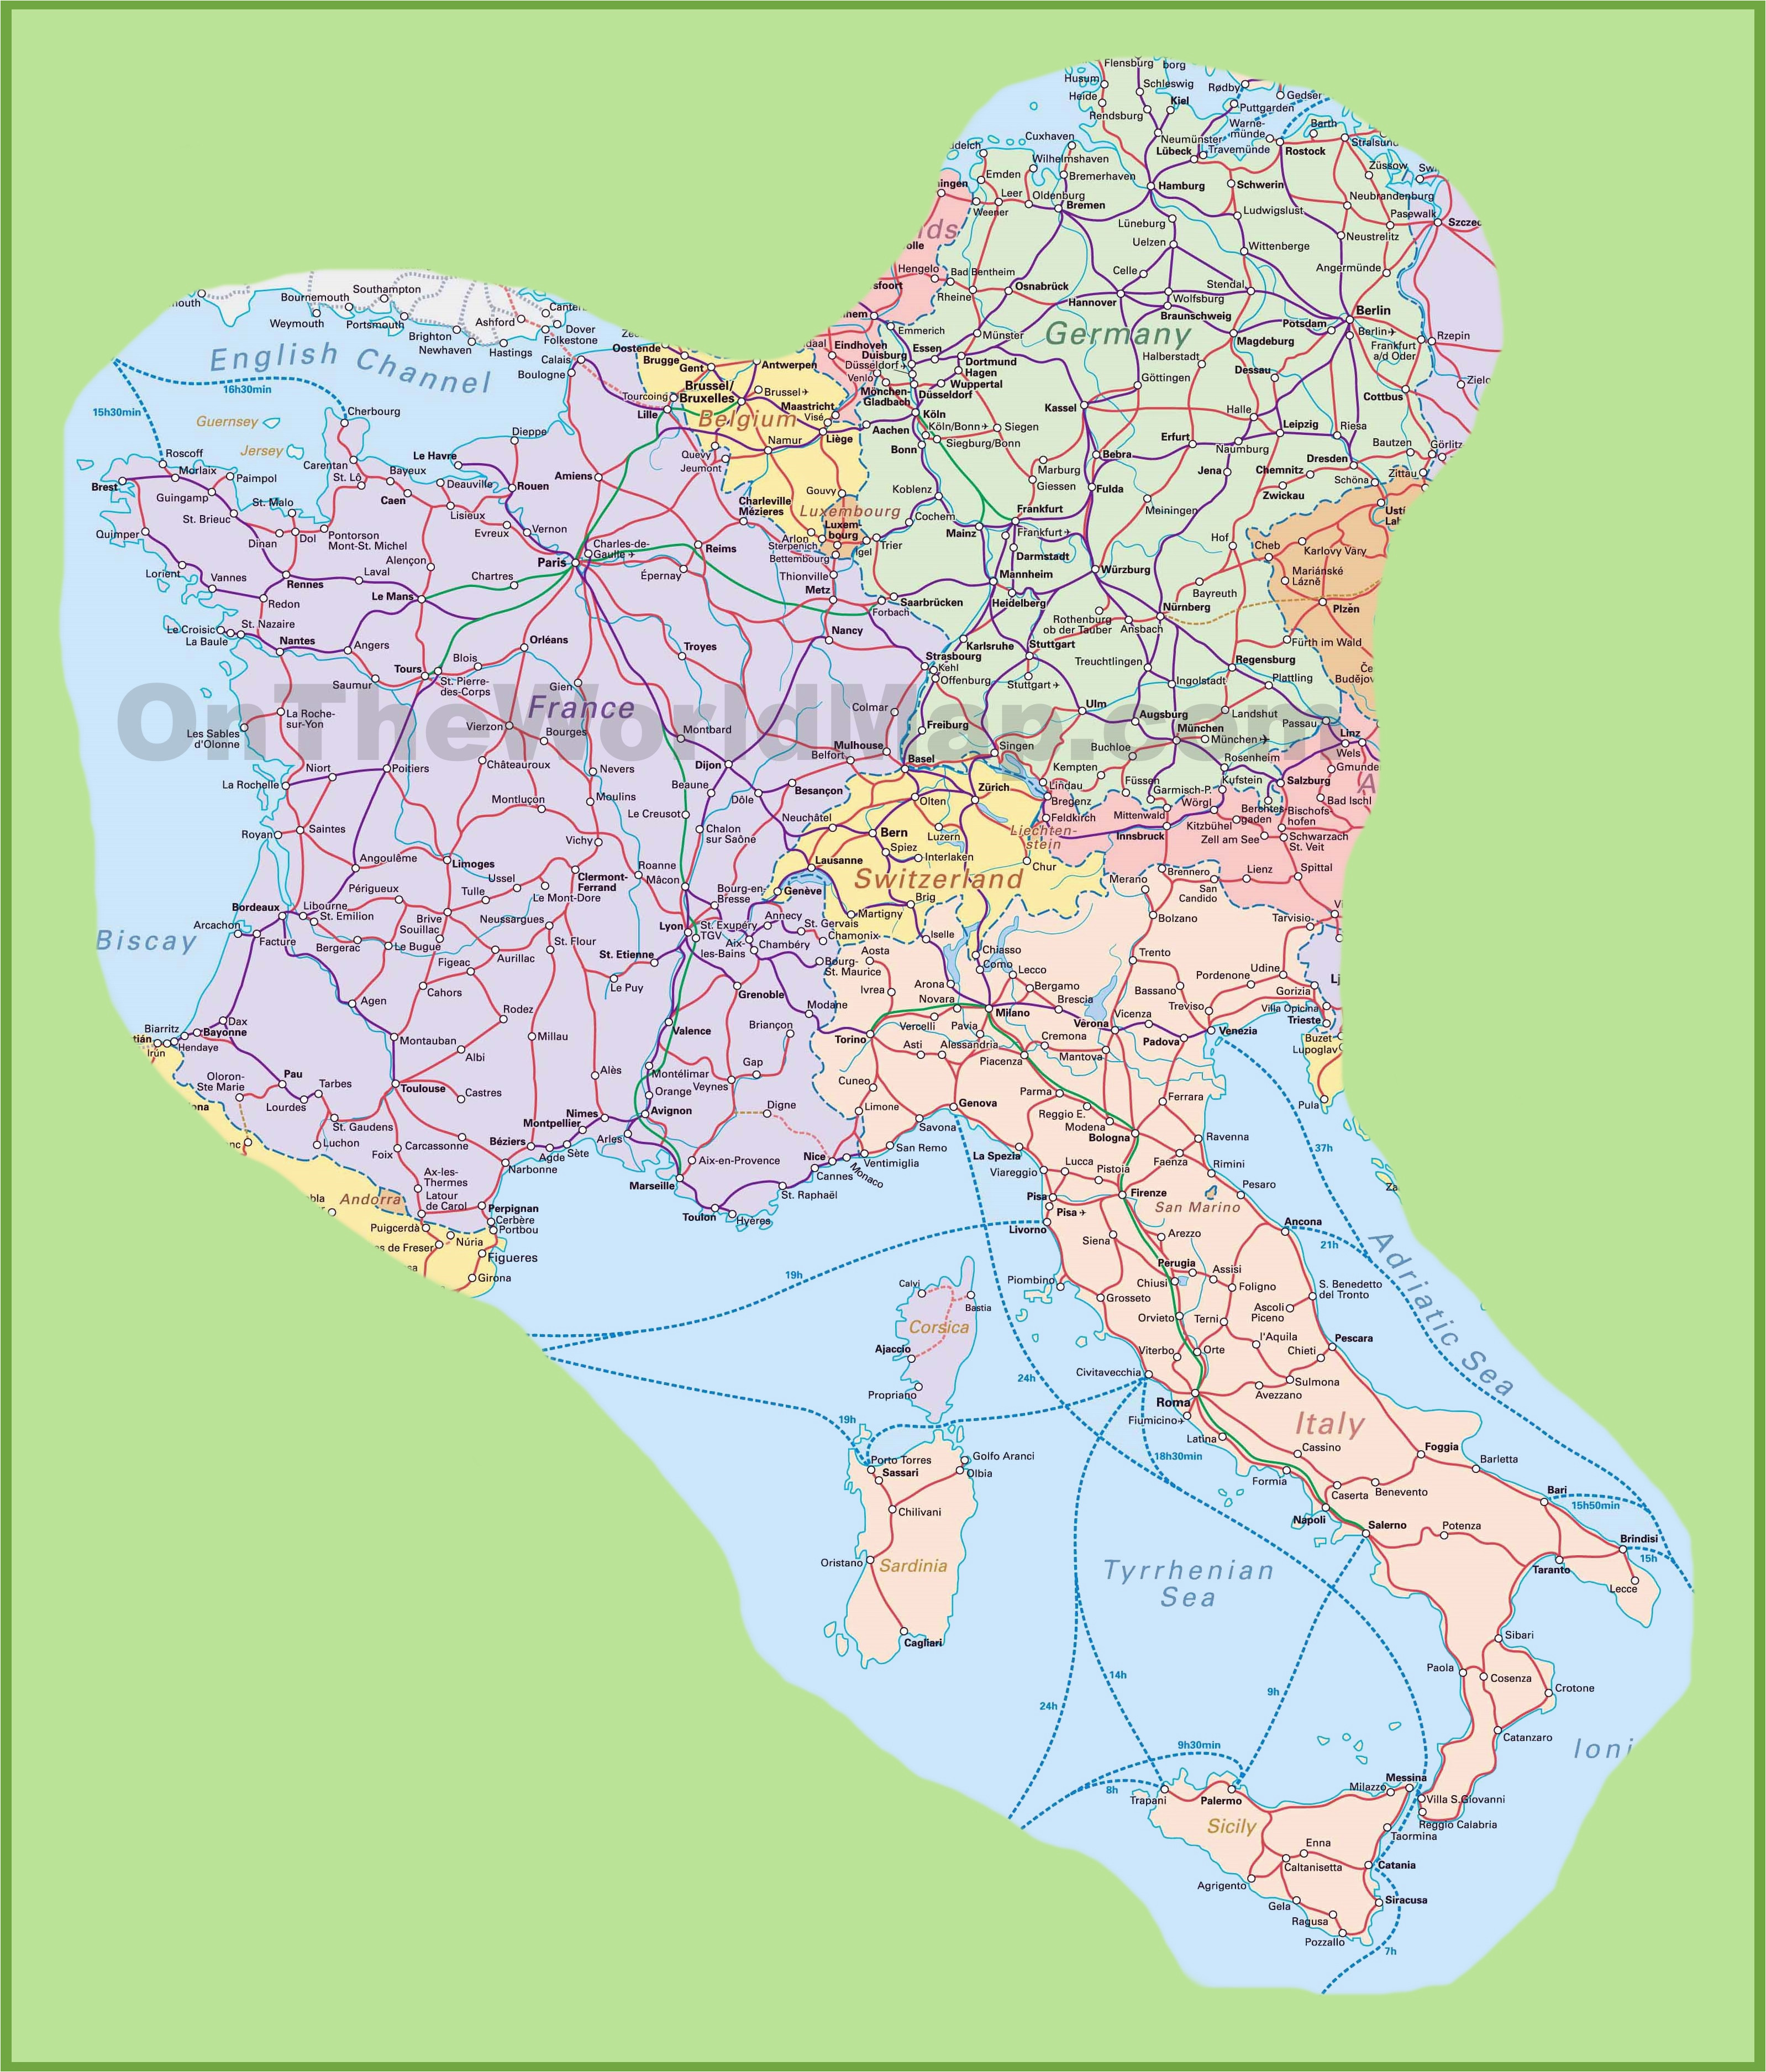 Map Of France Cities And Towns.Italy Map With Cities And Towns Map Of Switzerland Italy Germany And